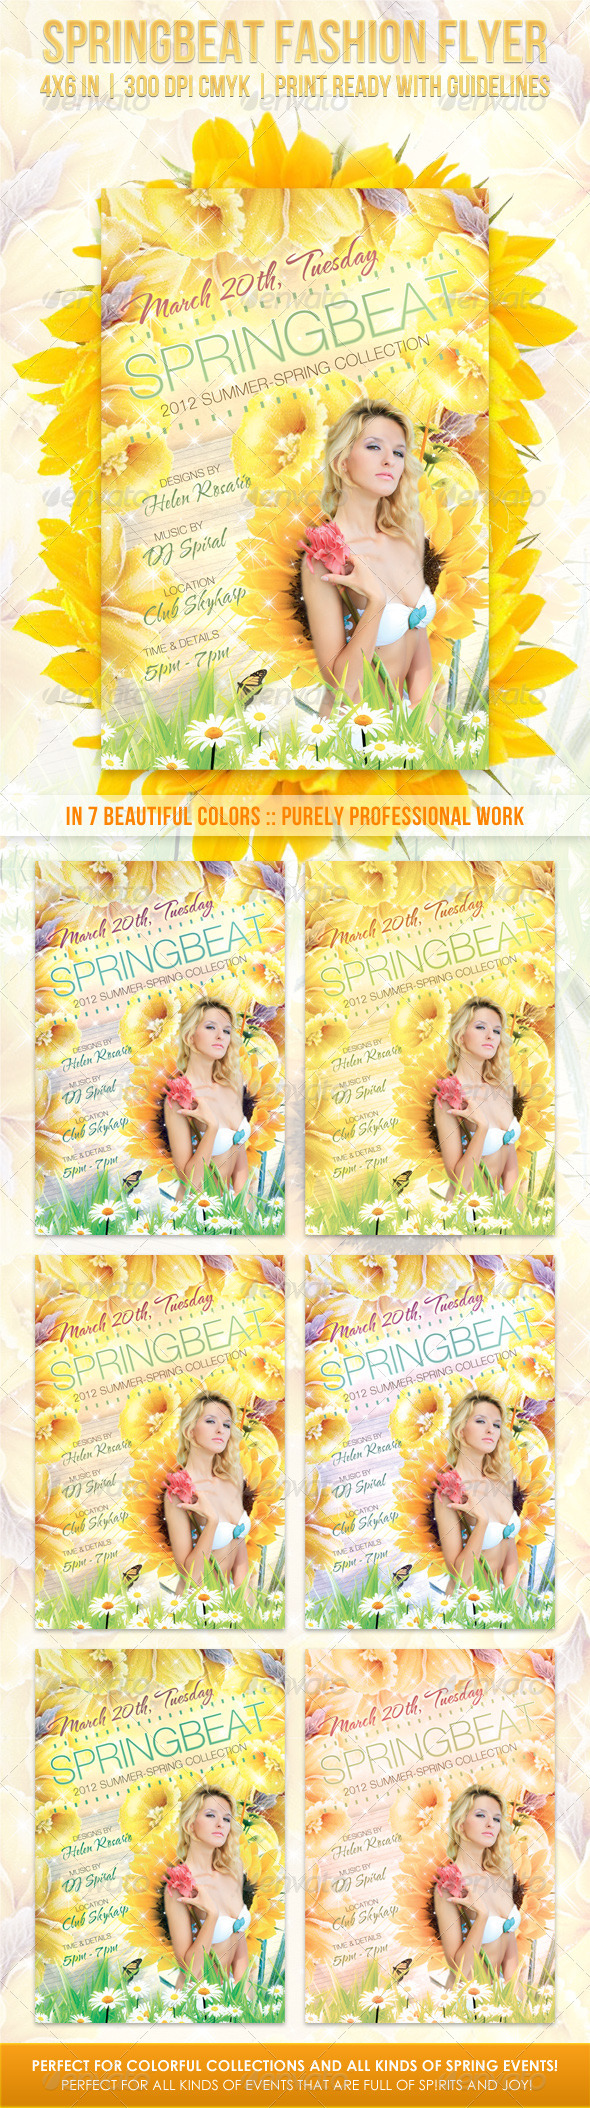 Springbeat Spring Fashion Flyer - Flyers Print Templates